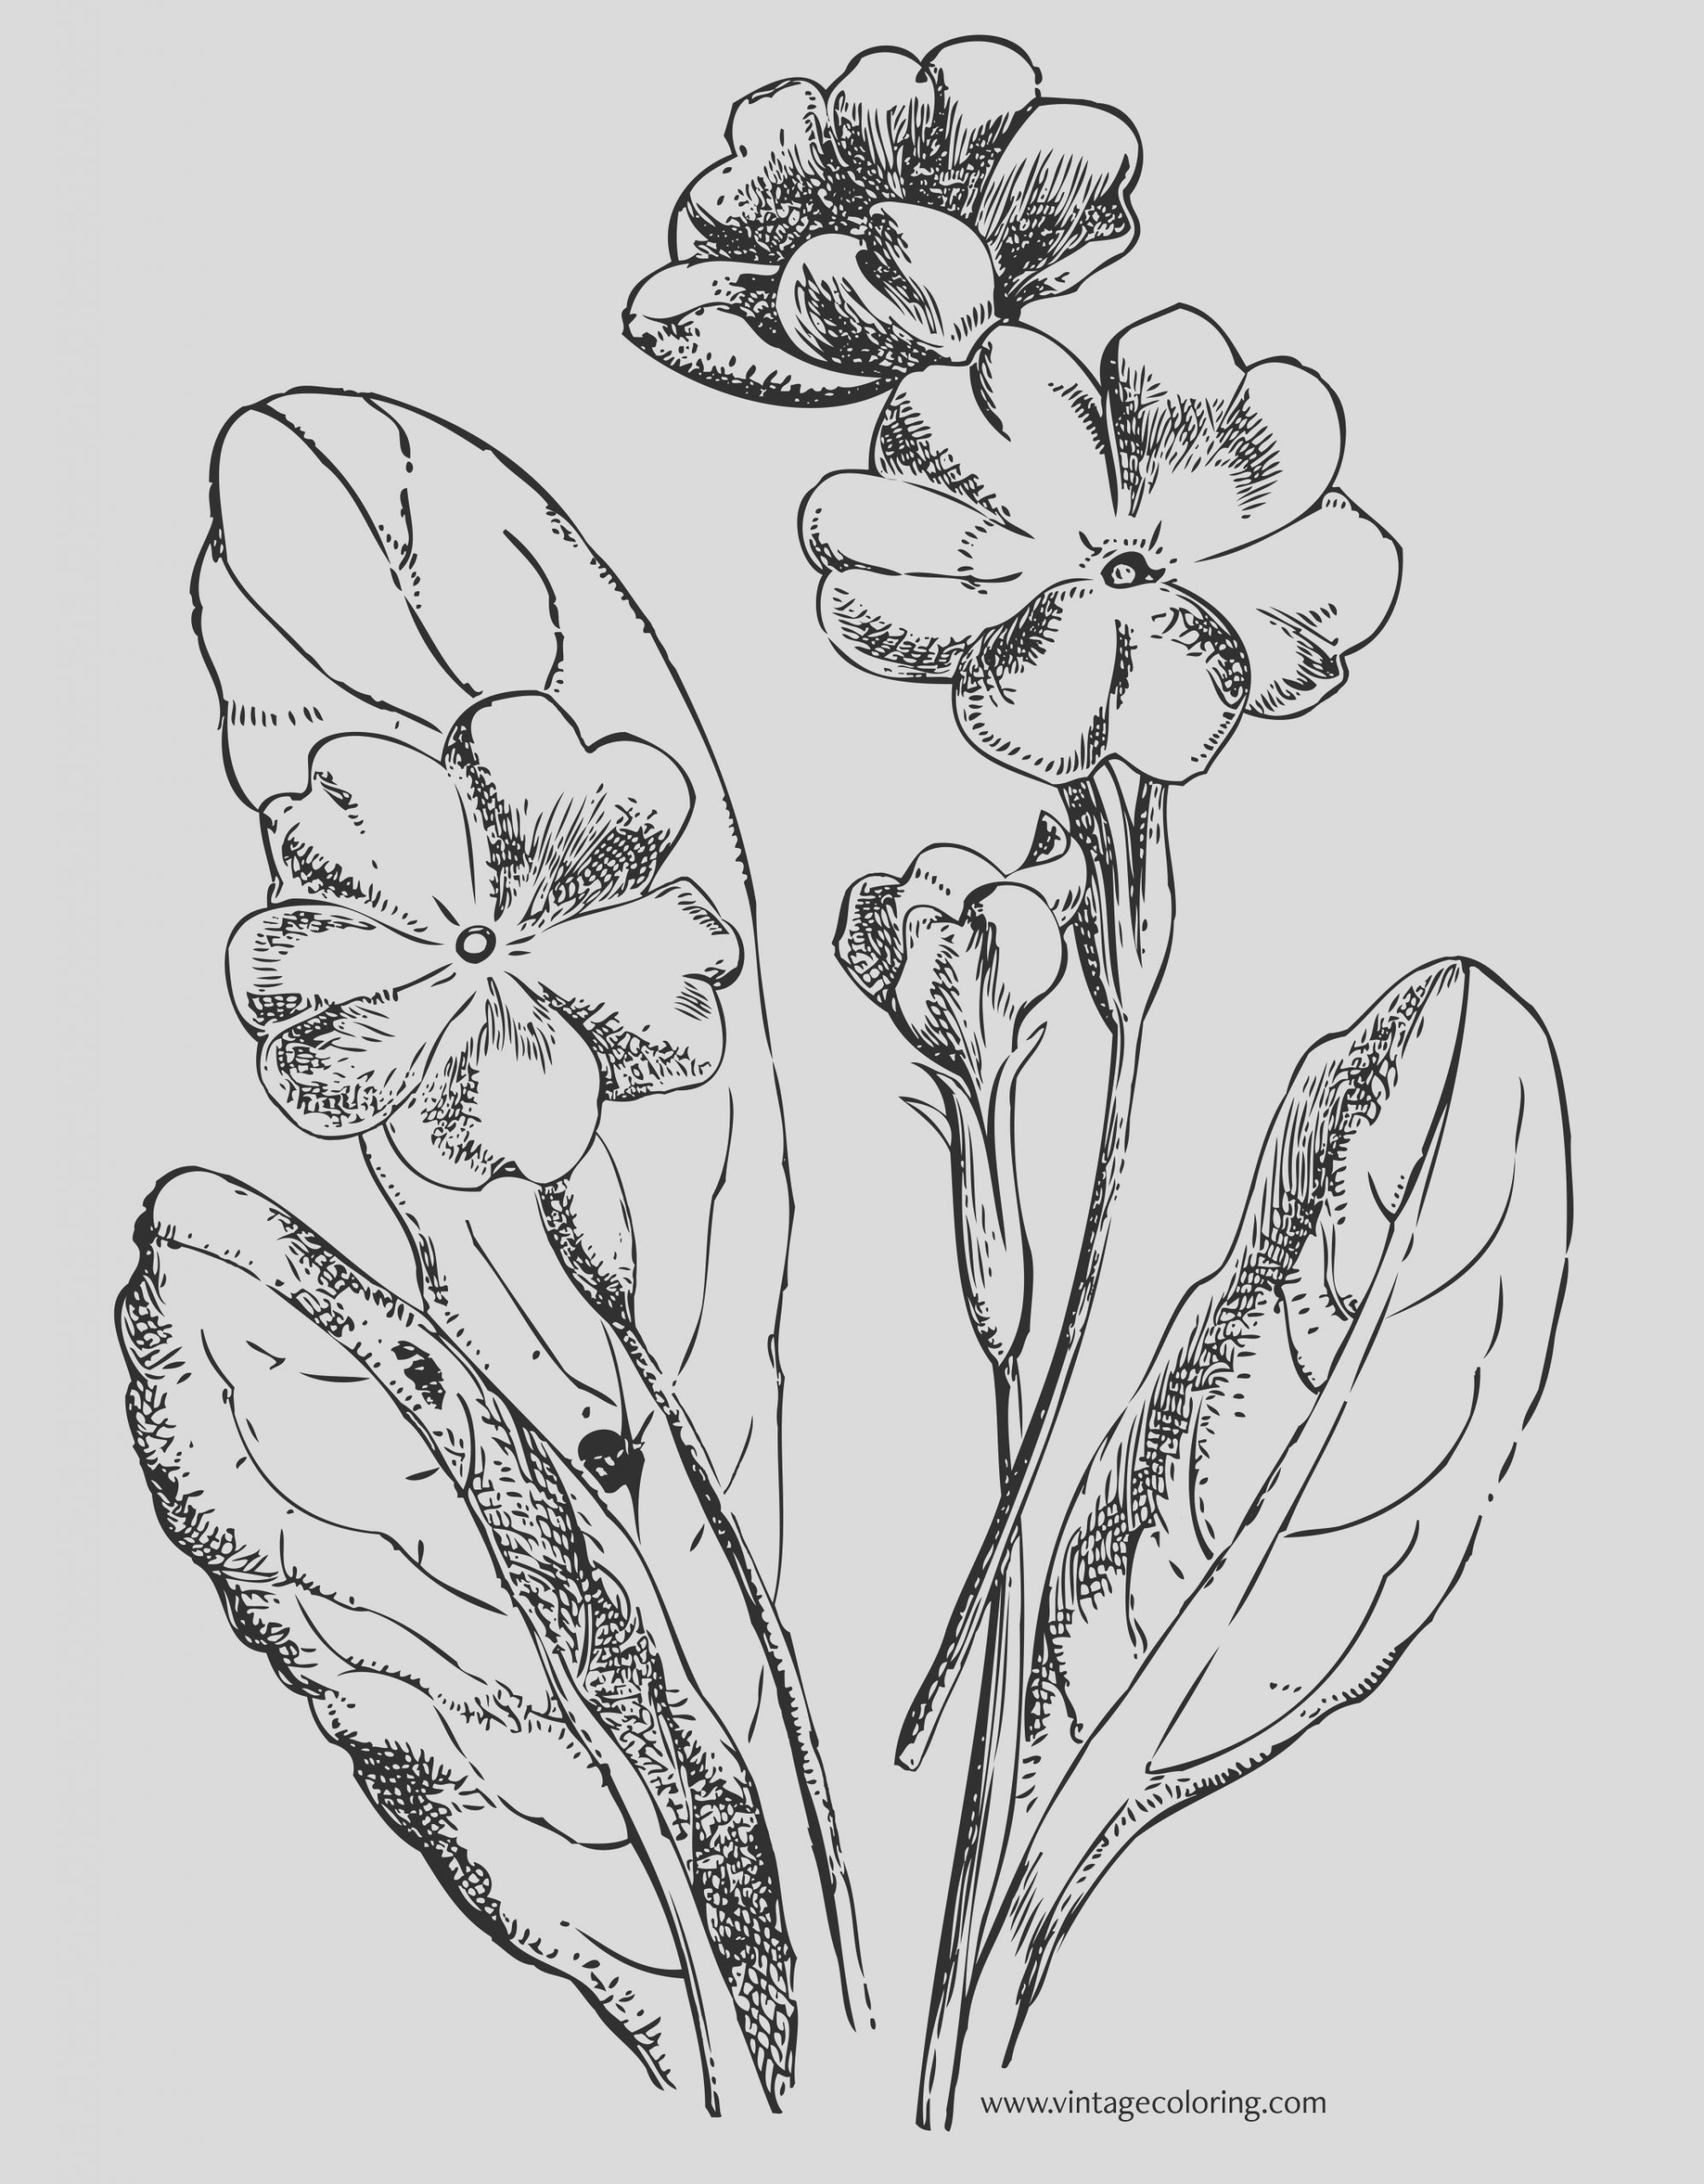 the primrose a free vintage coloring page